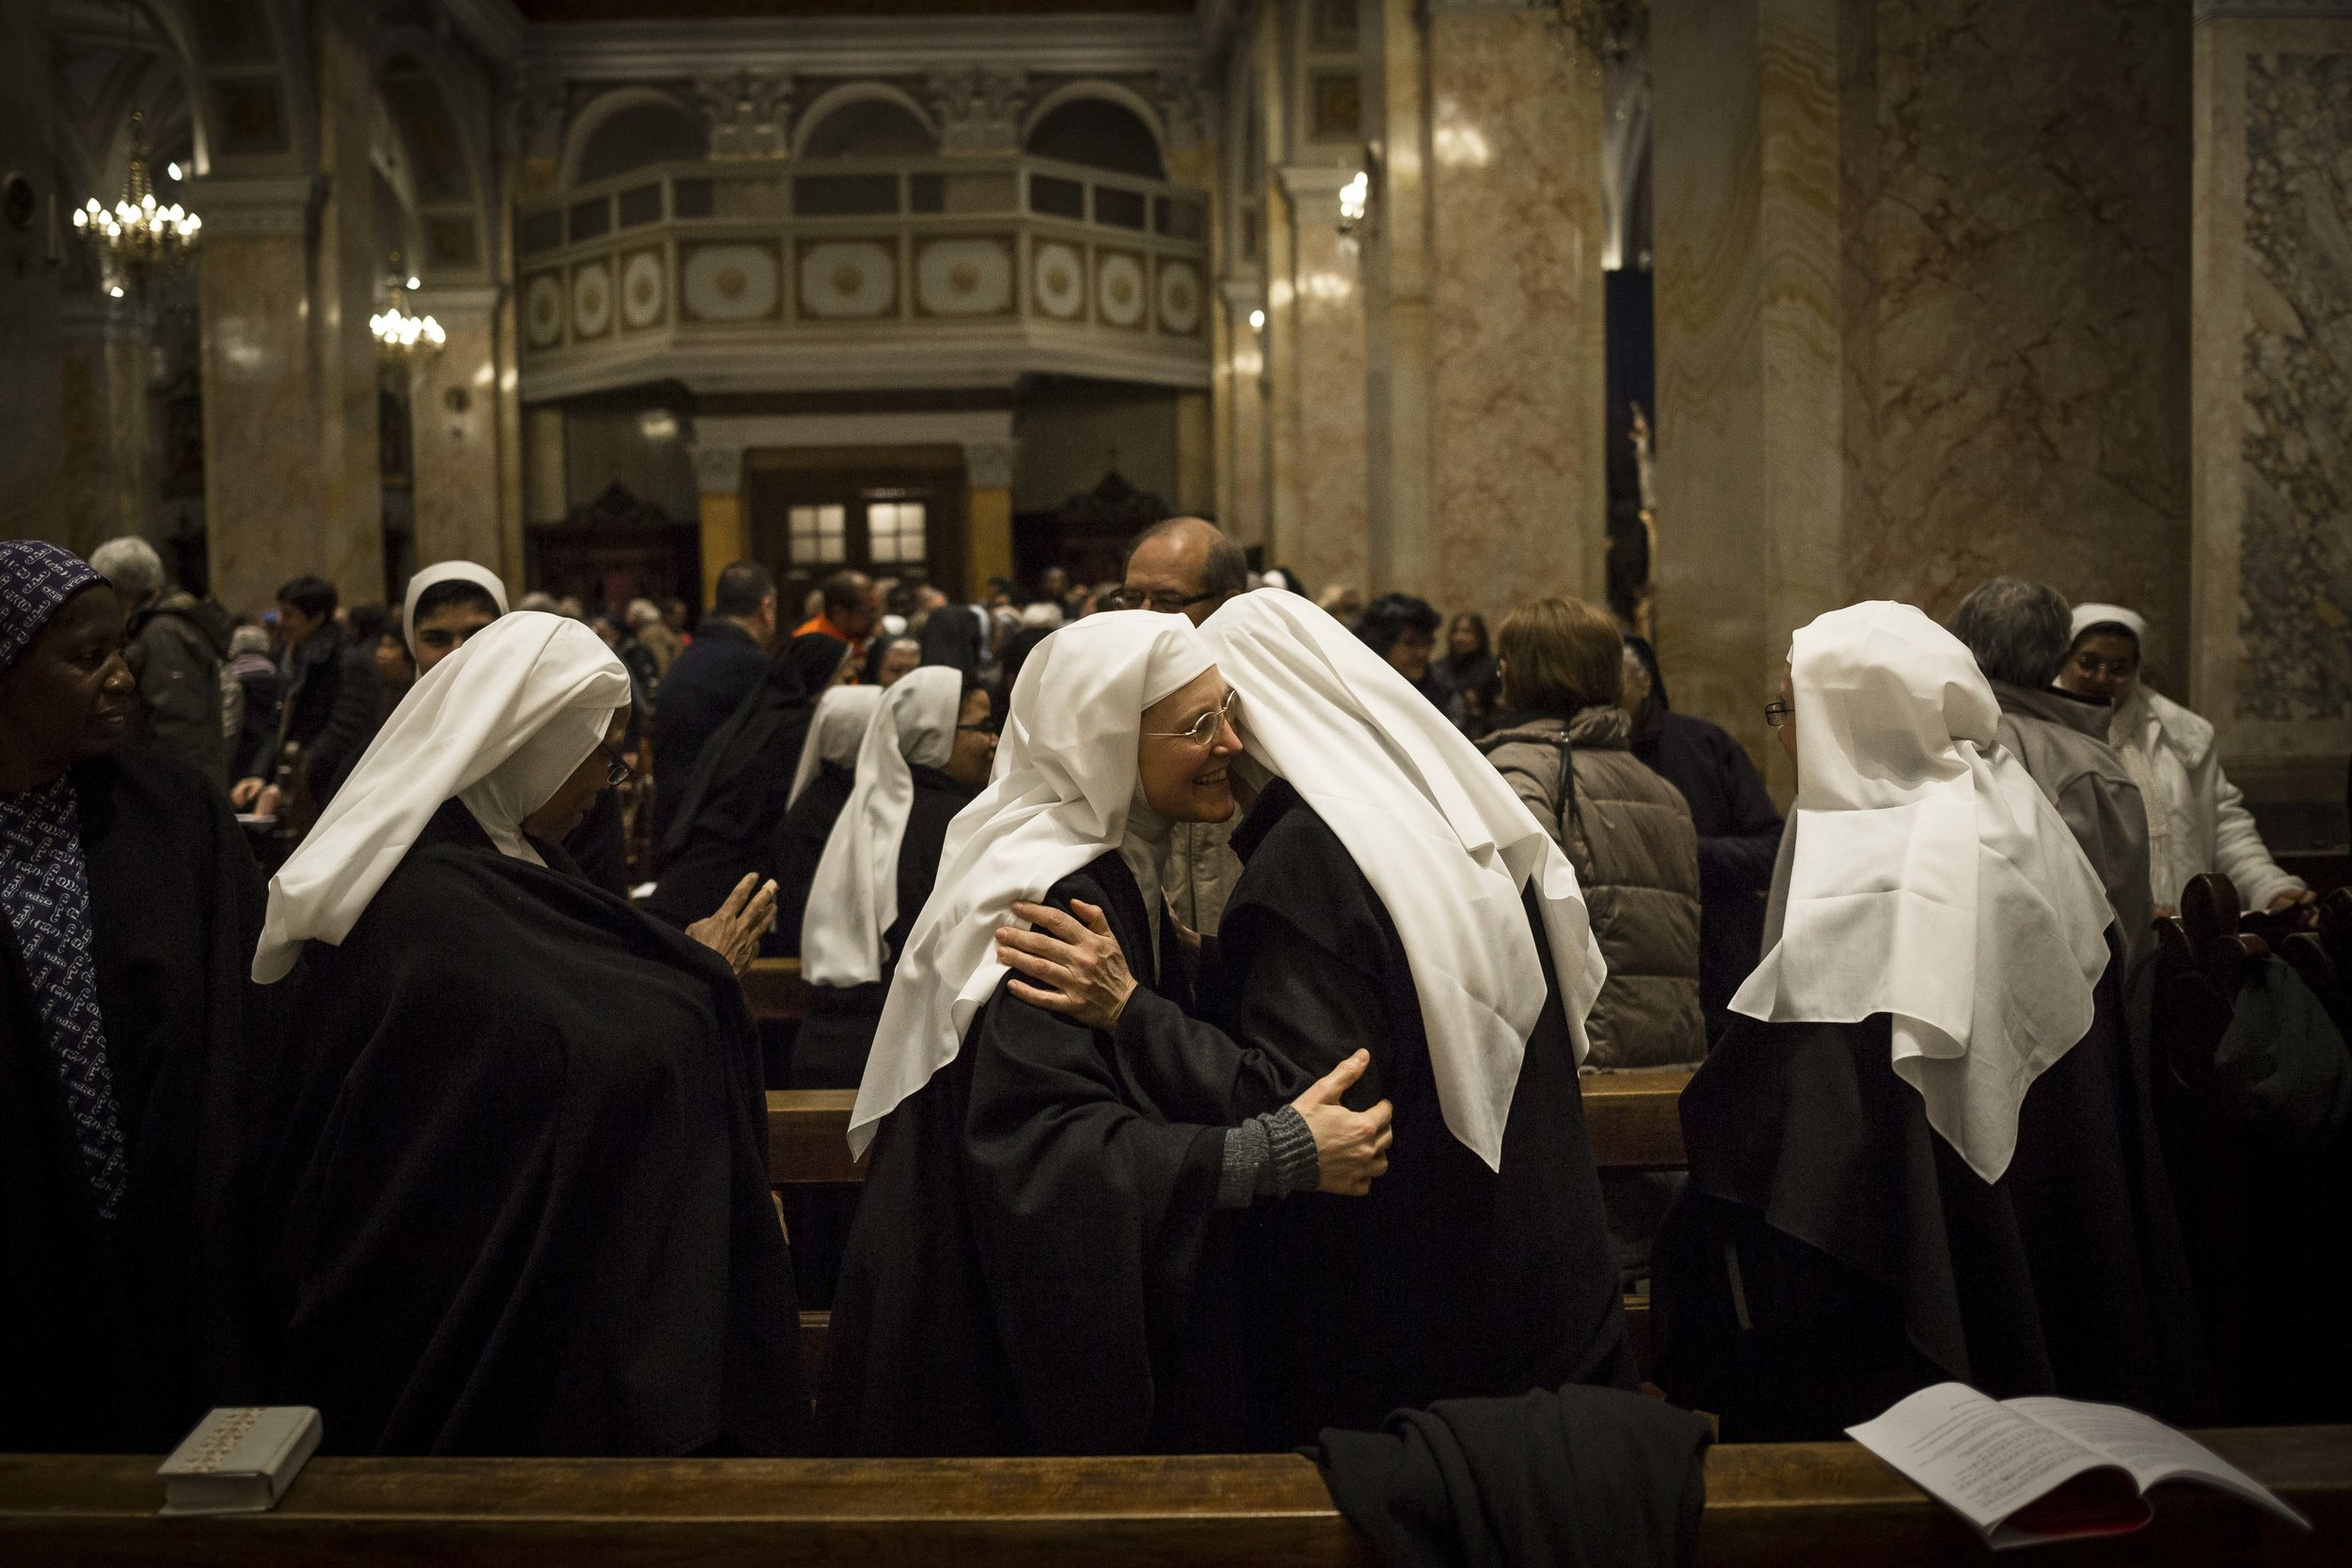 Nuns taking part at the Week of Prayer in the St. Francis Church in Jerusalem's Old City.